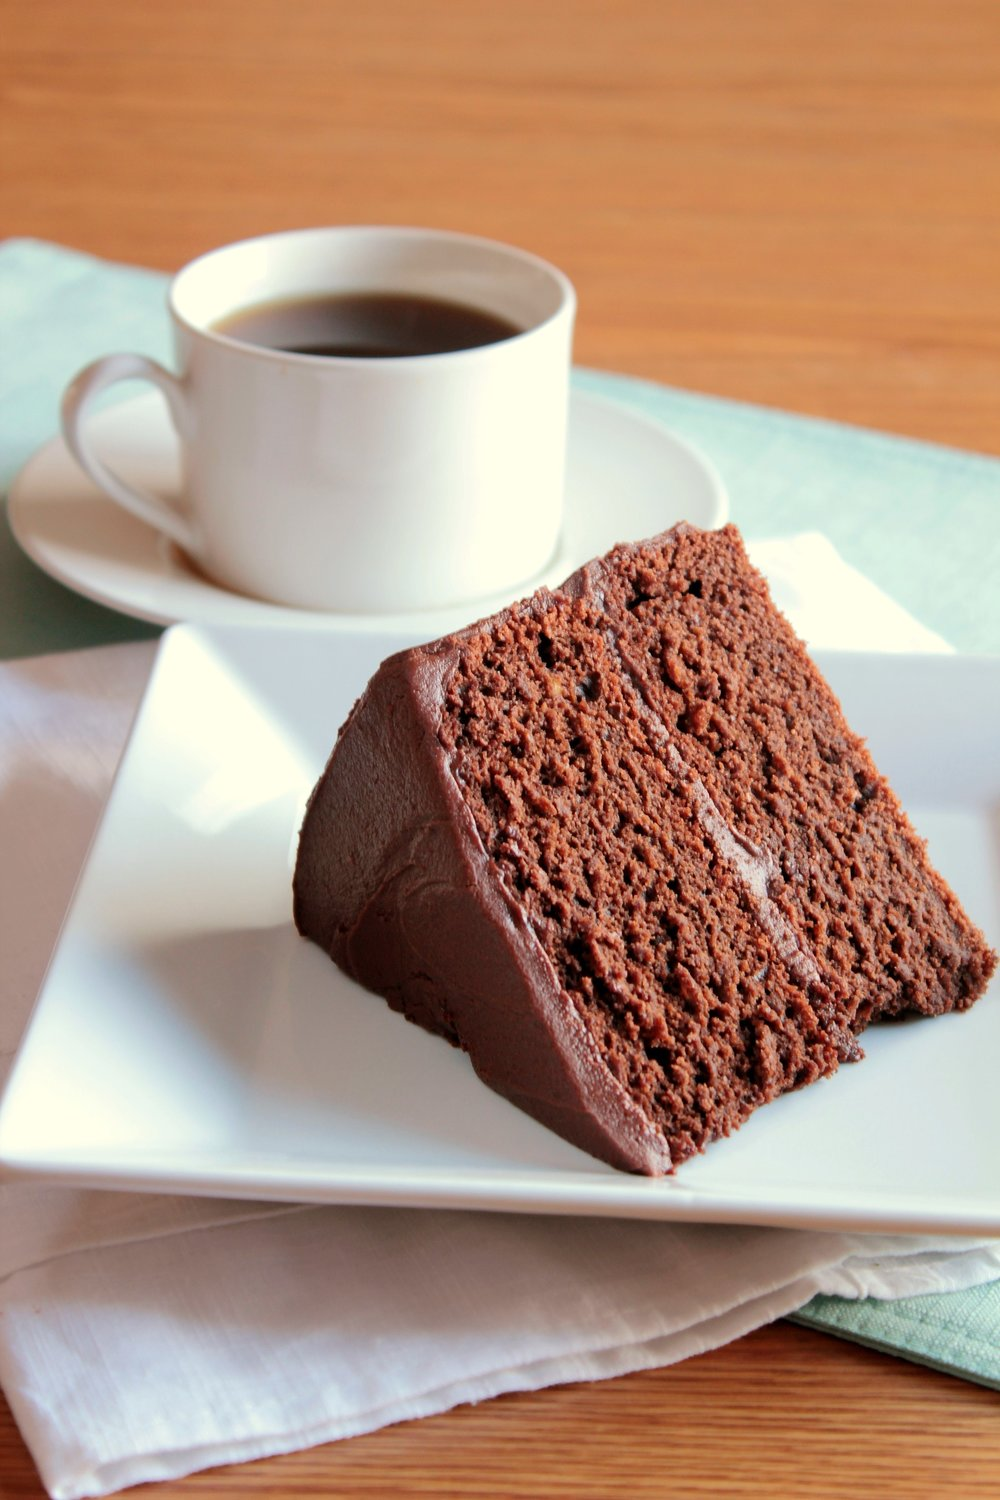 There Is Something To Be Said About A Simple Chocolate Cake No Frills Fuss Mountains Of Too Sweet Buttercream Spoil The Treat Just And